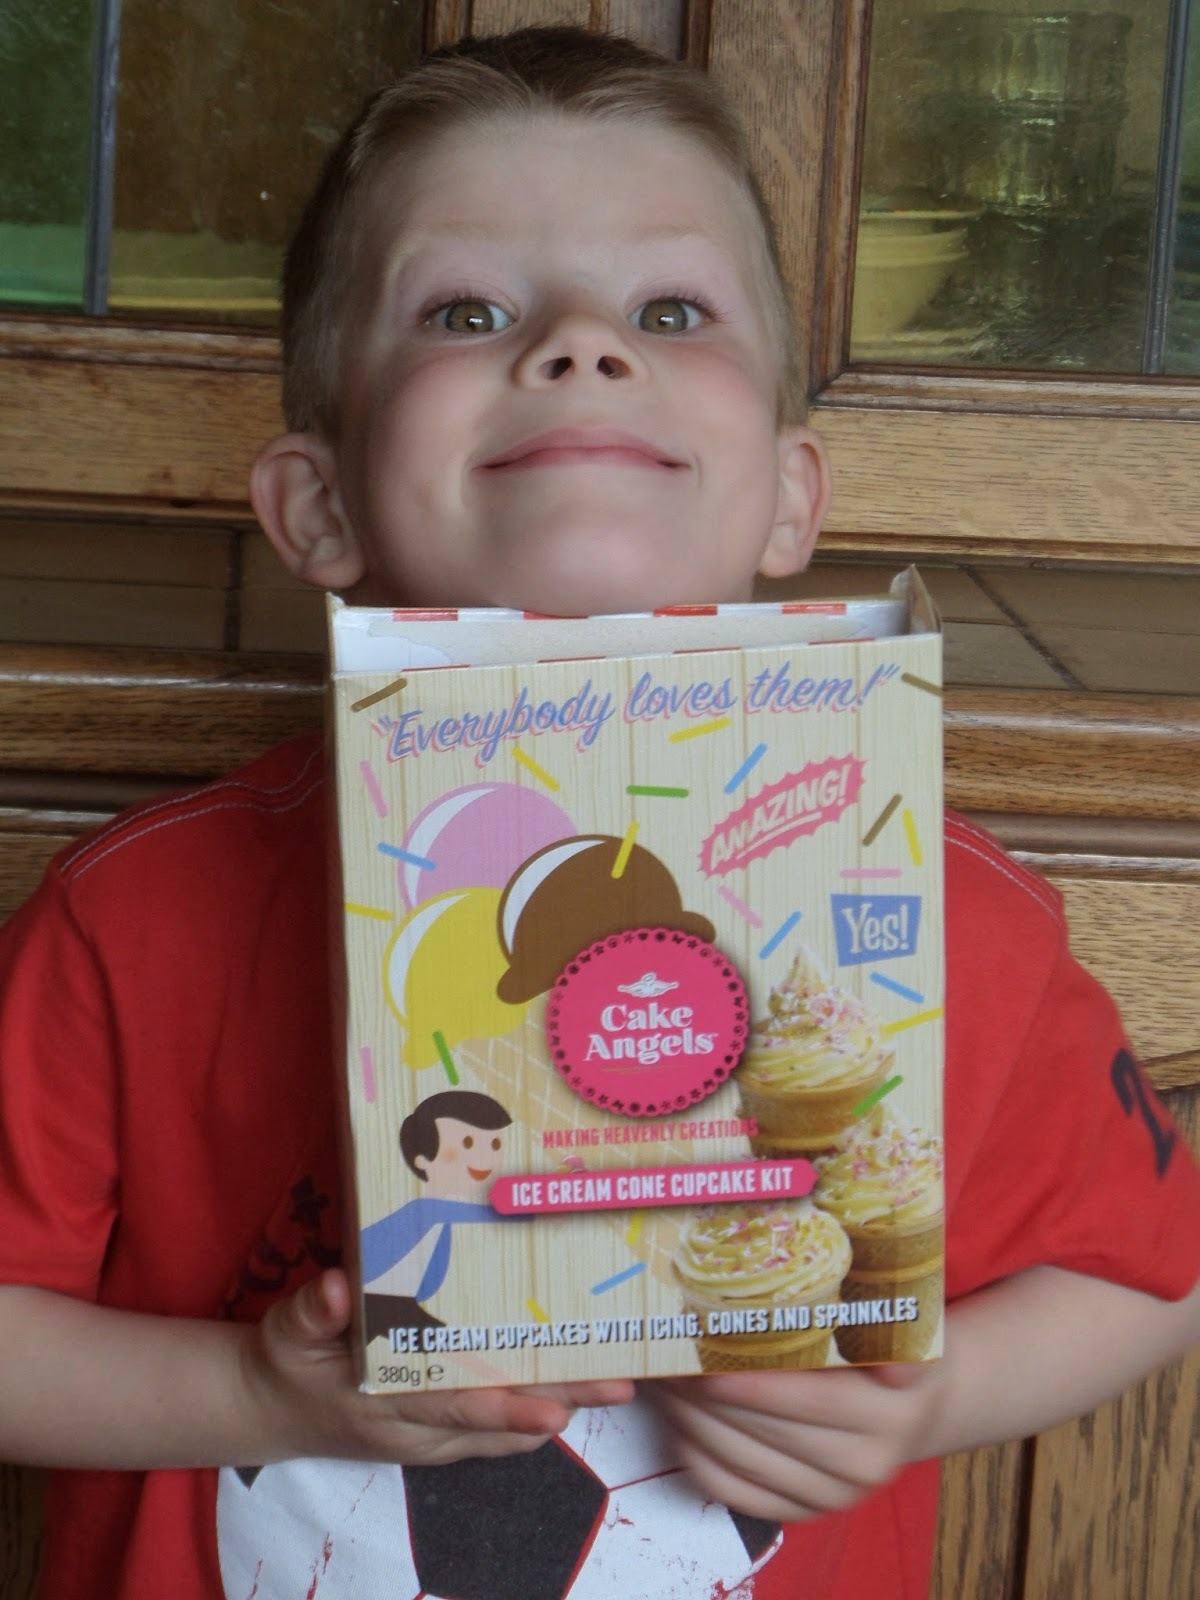 Cake Angels Ice Cream Cone Cupcake Kit review